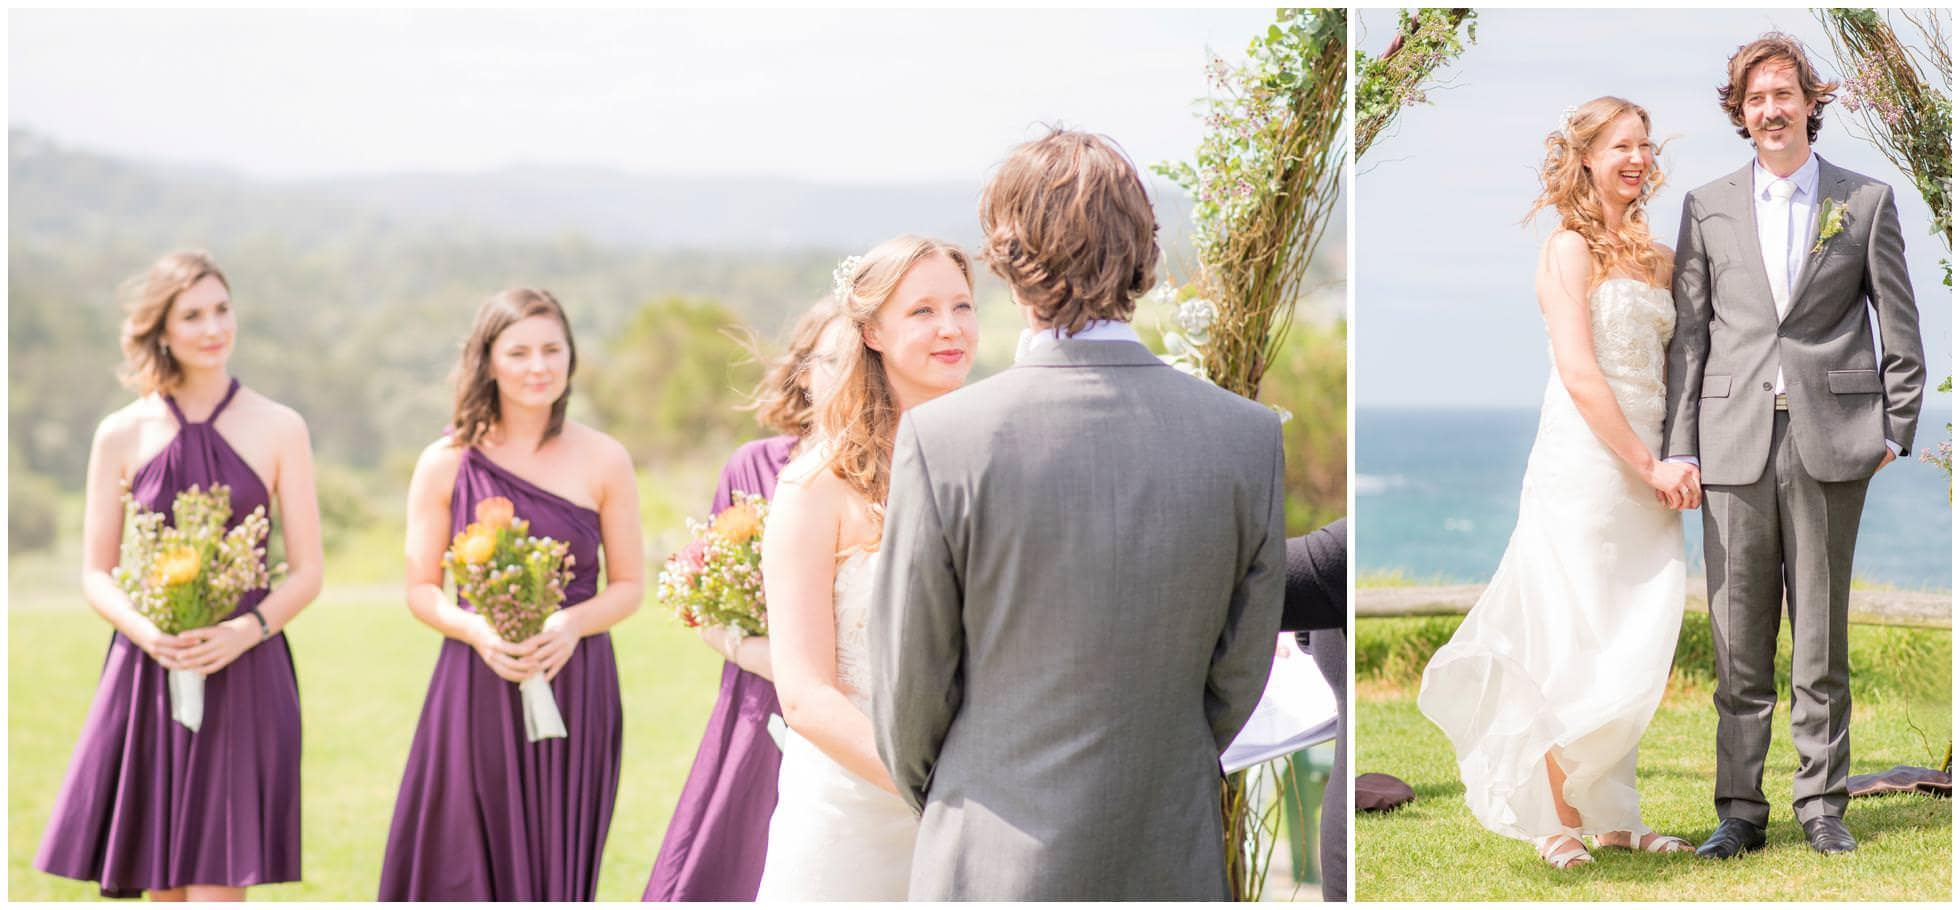 Mona Vale Wedding Photography: A gorgeous wedding at the Robert Dunn reserve